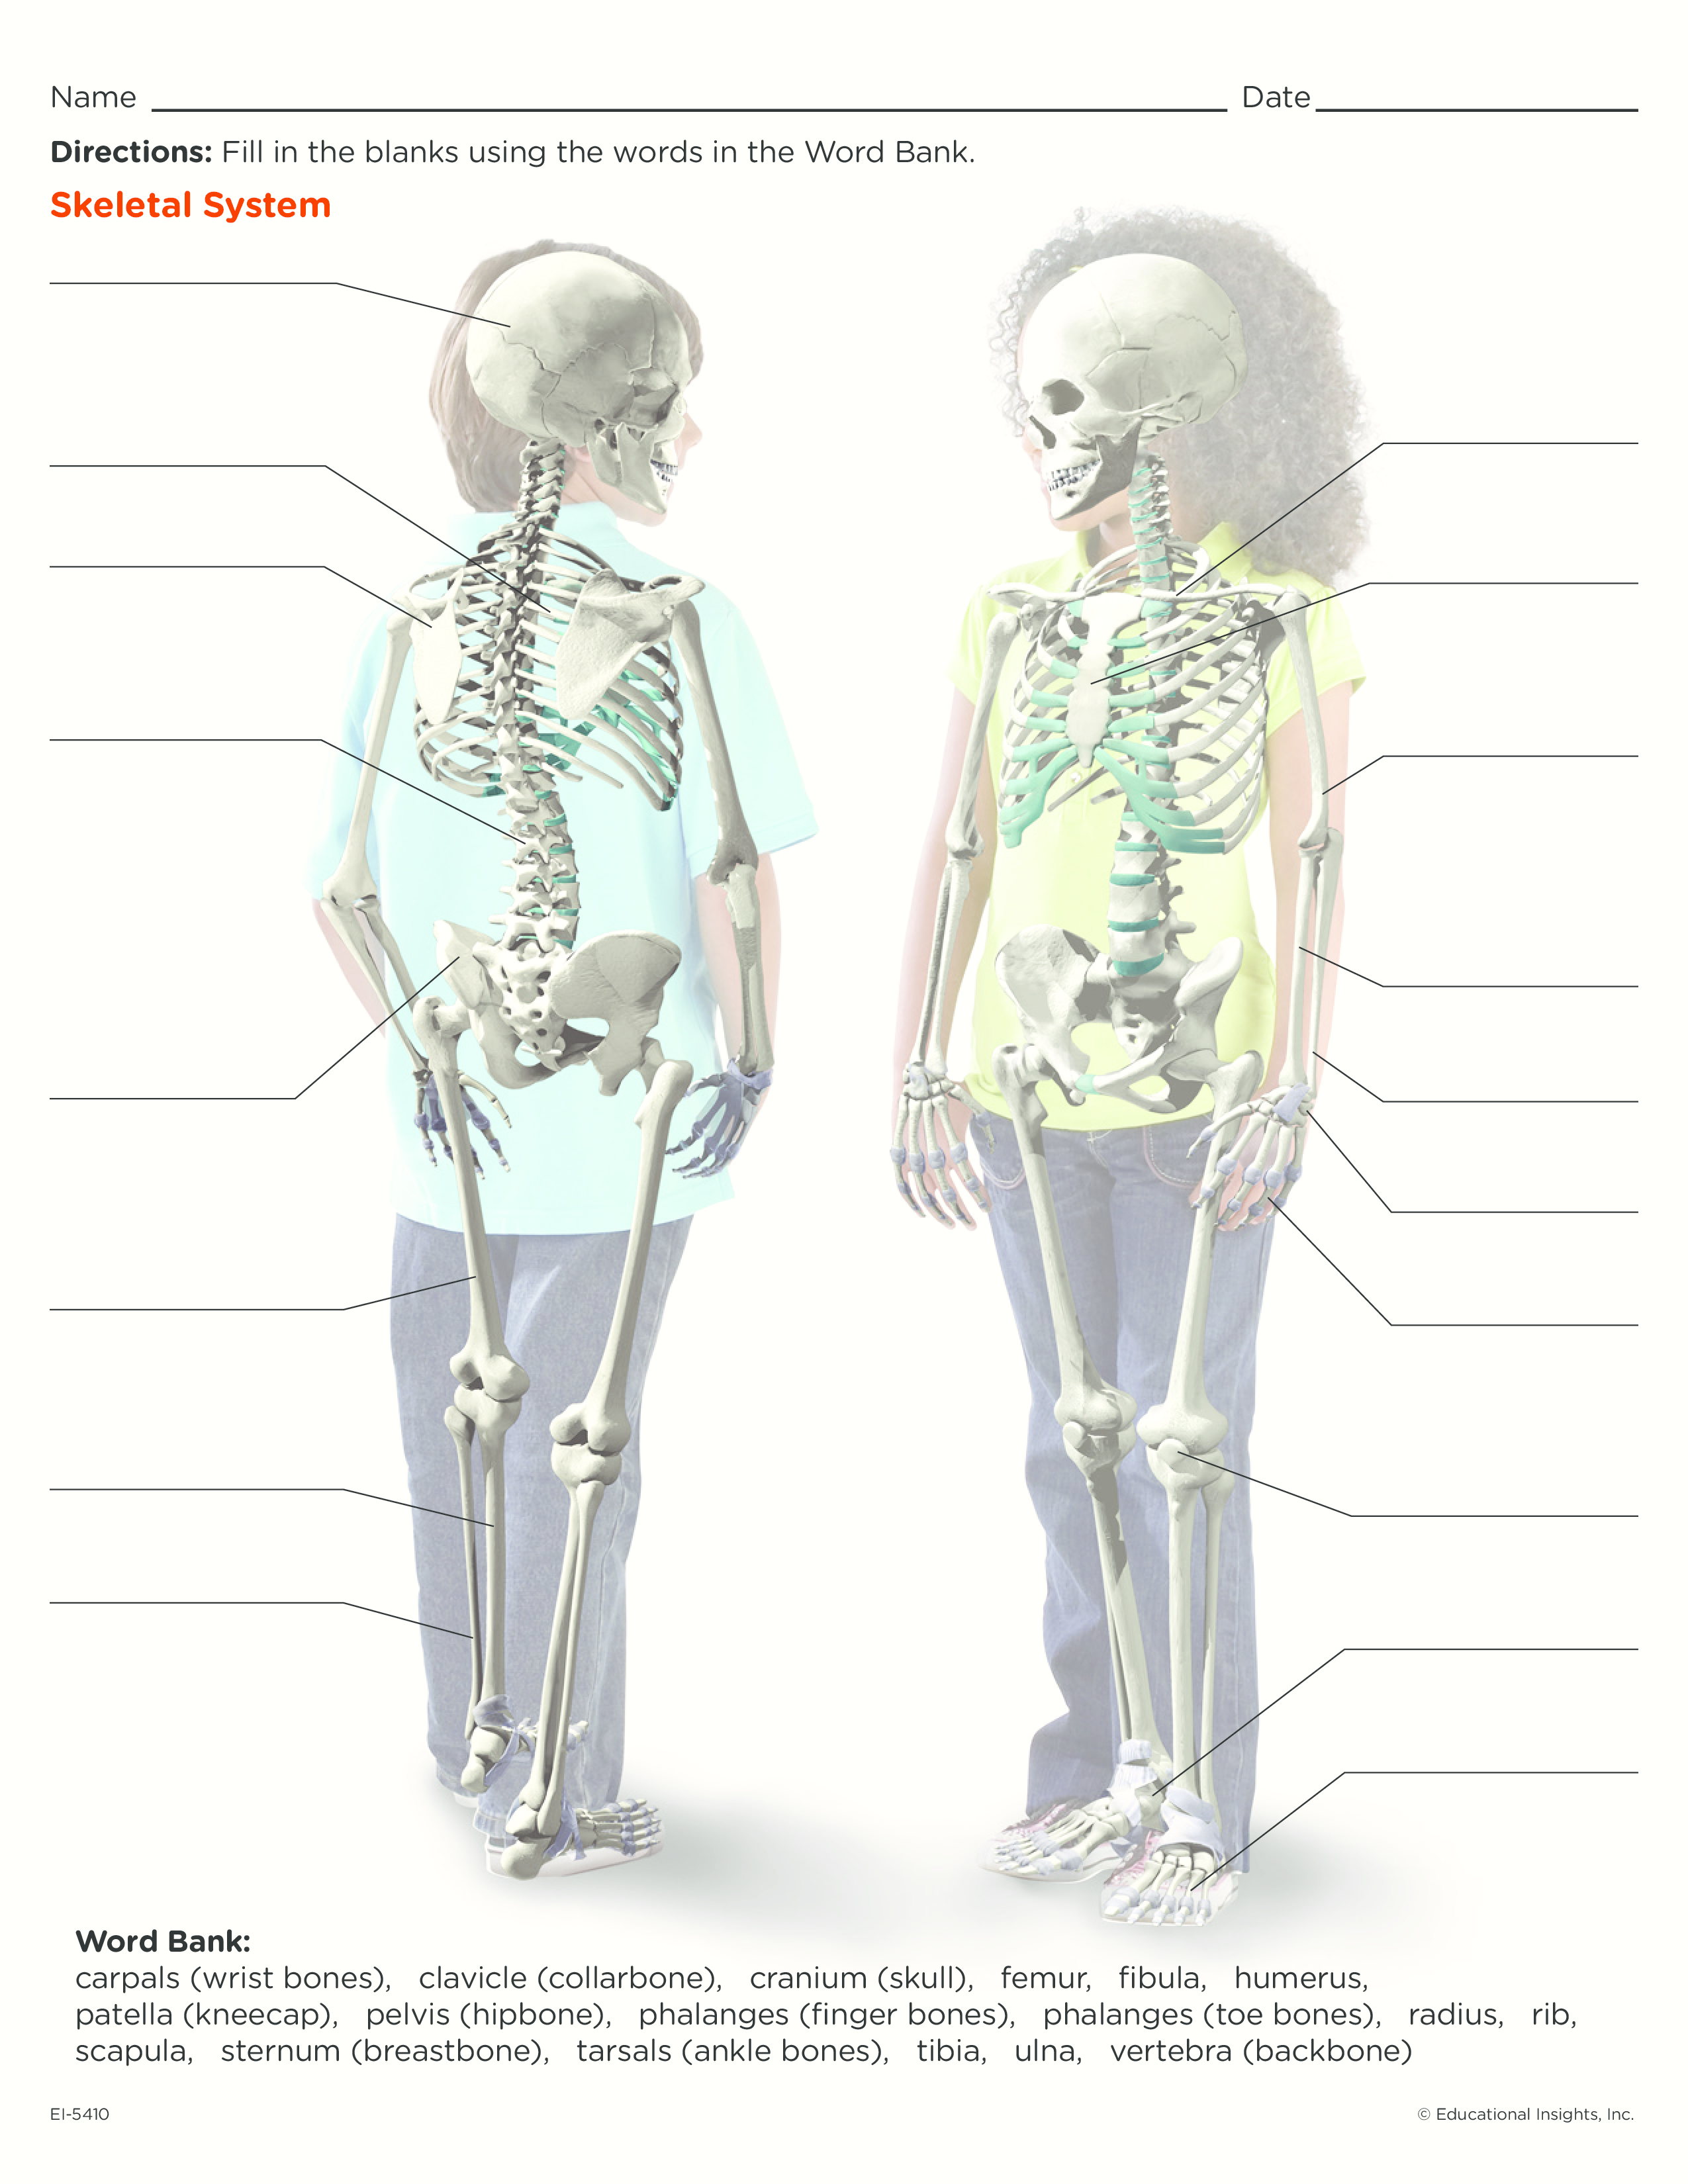 Cool Worksheet For Kids To Learn About The Skeletal System Find